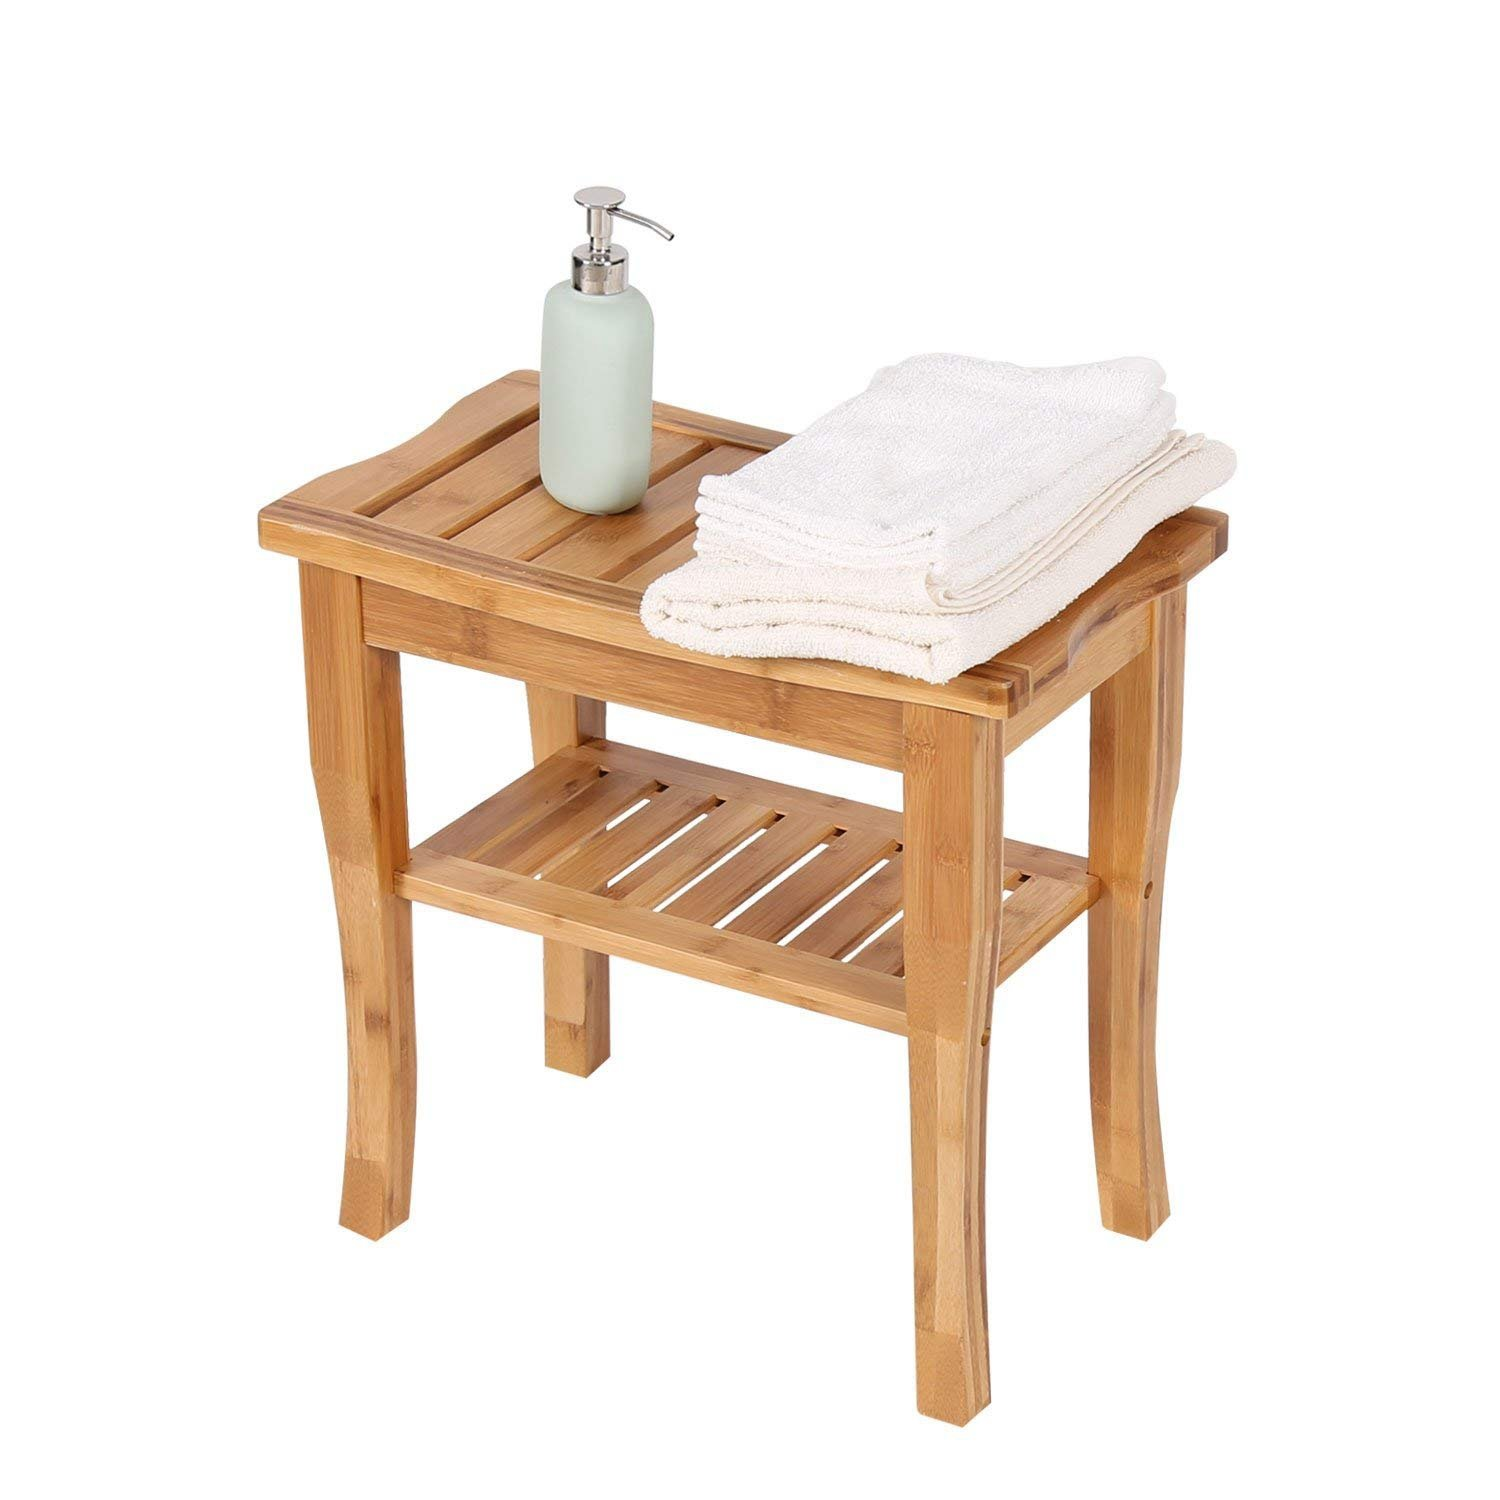 ArmPro Bamboo Shower Bench Seat Spa Bench Bath Organizer with Storage Shelf for Indoor and Outdoor